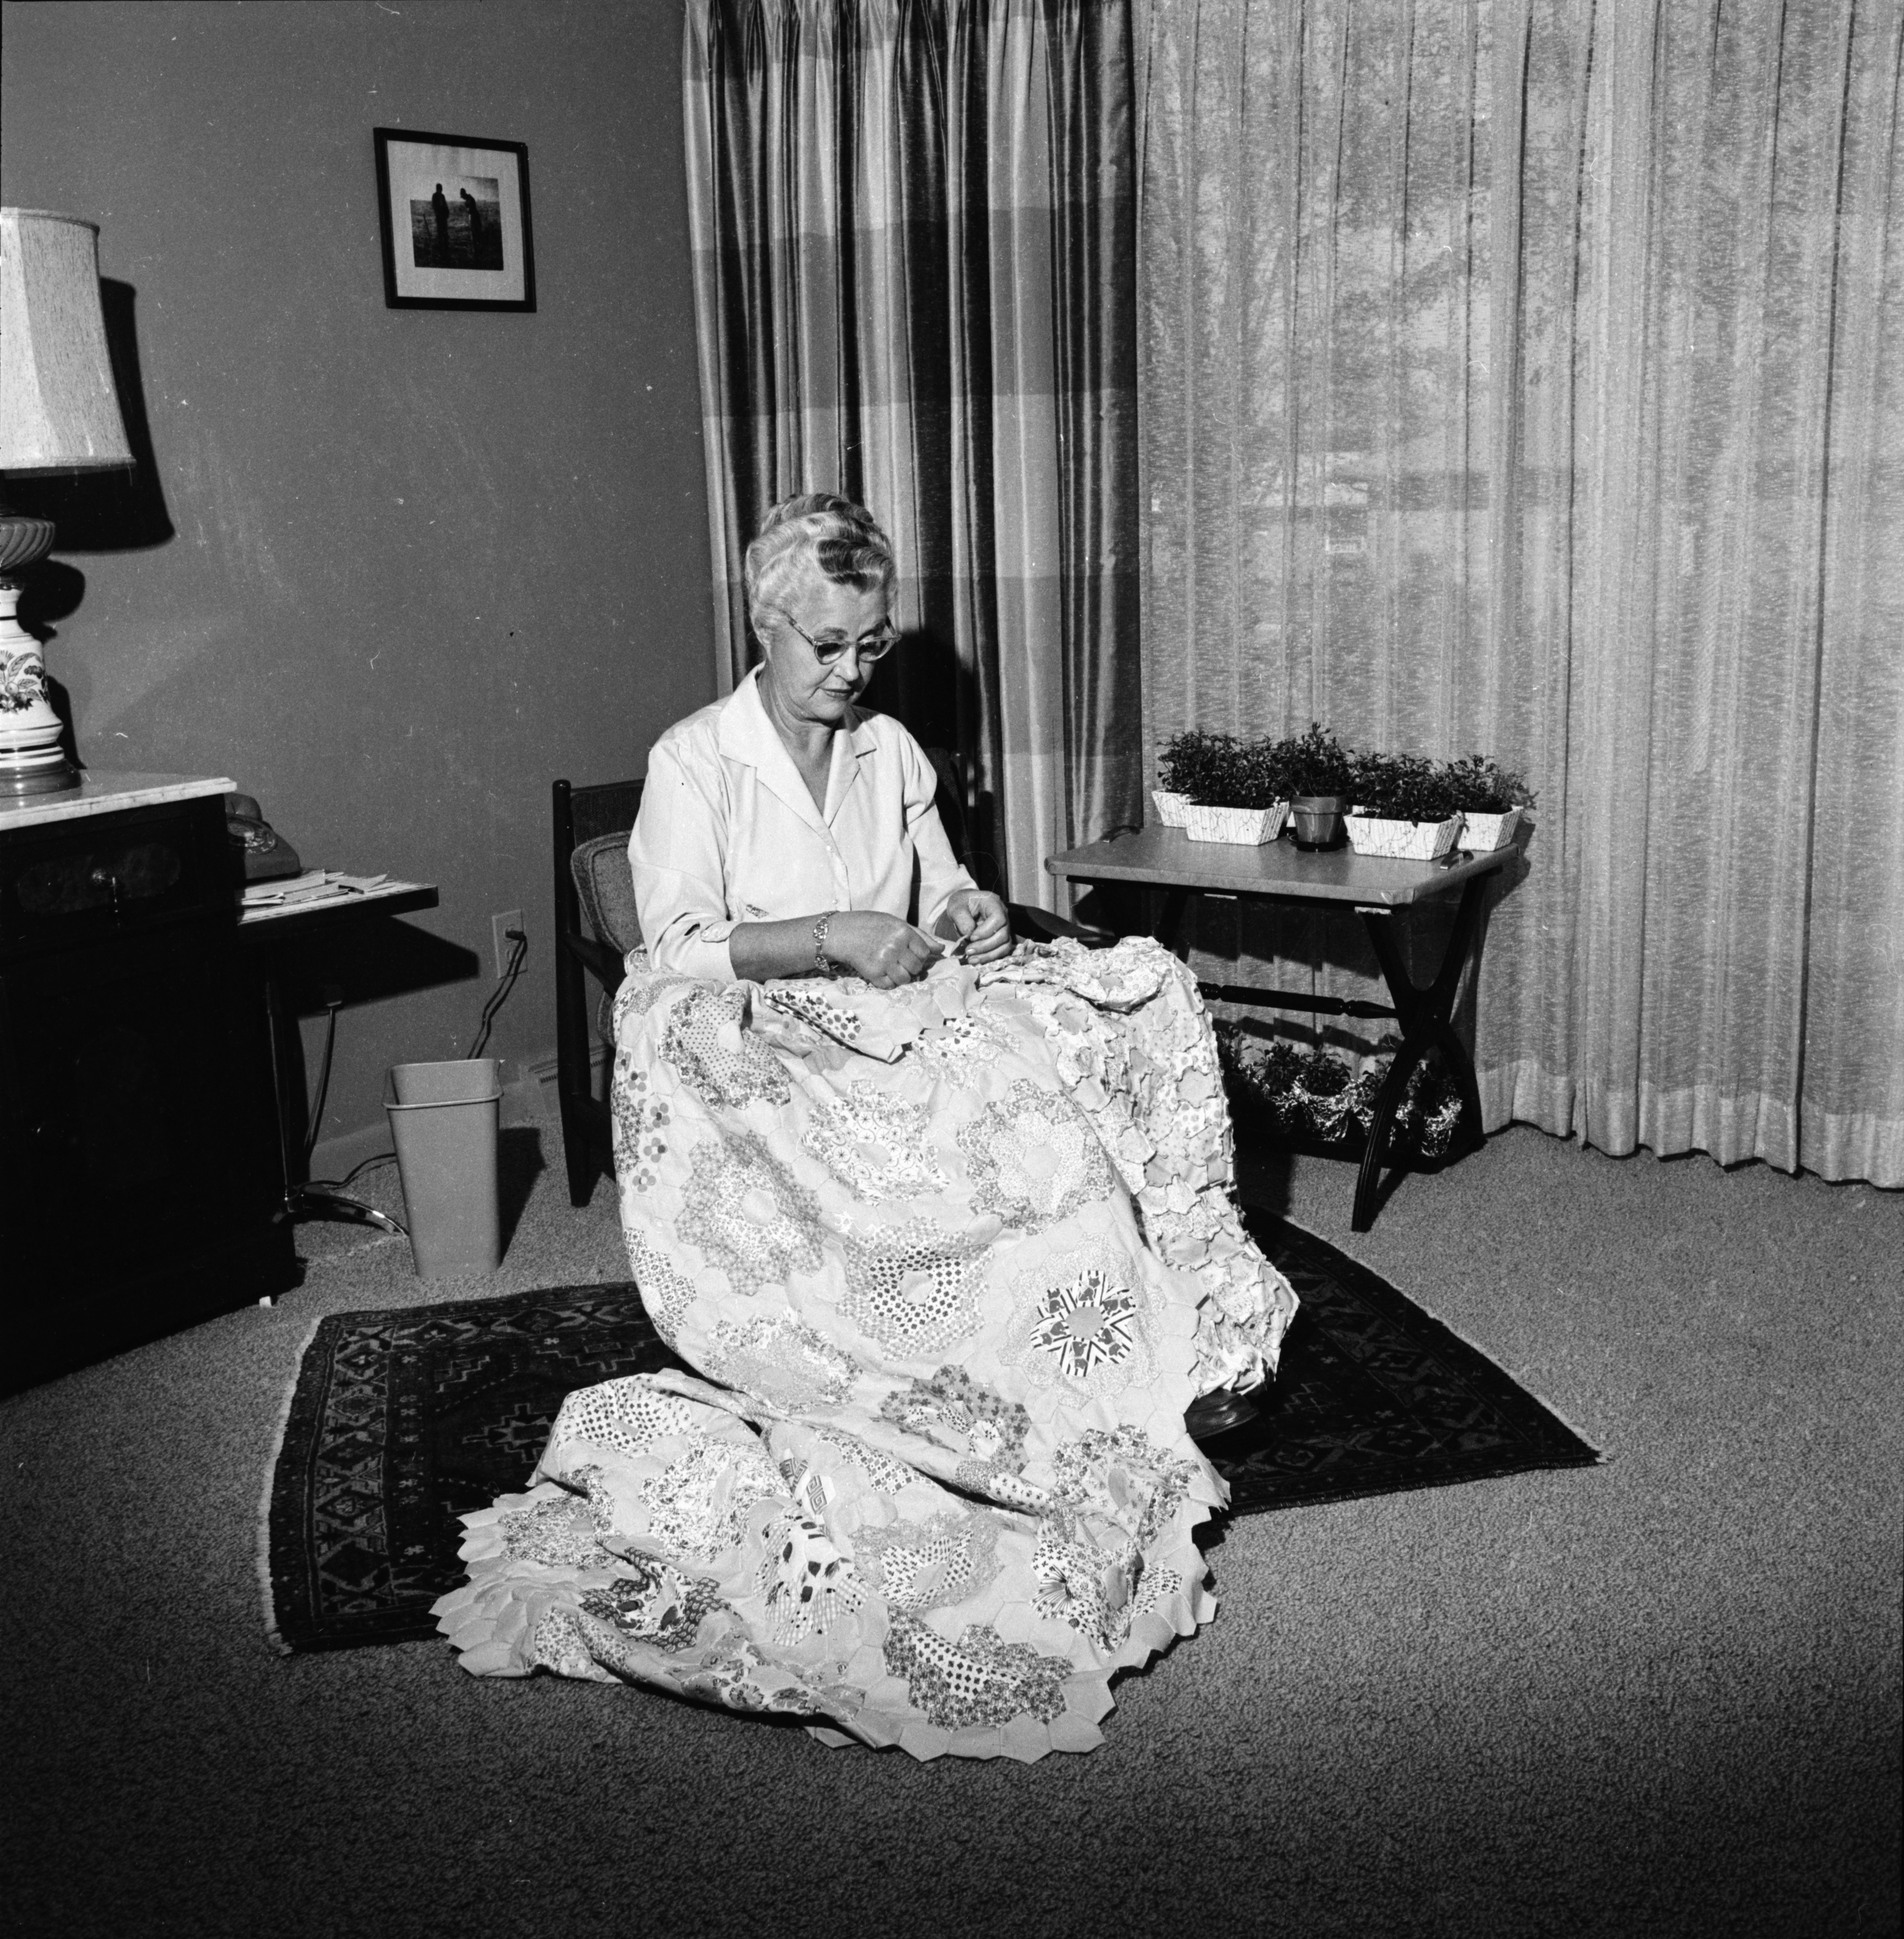 Charlotte Houck Sews A Quilt, October 1961 image